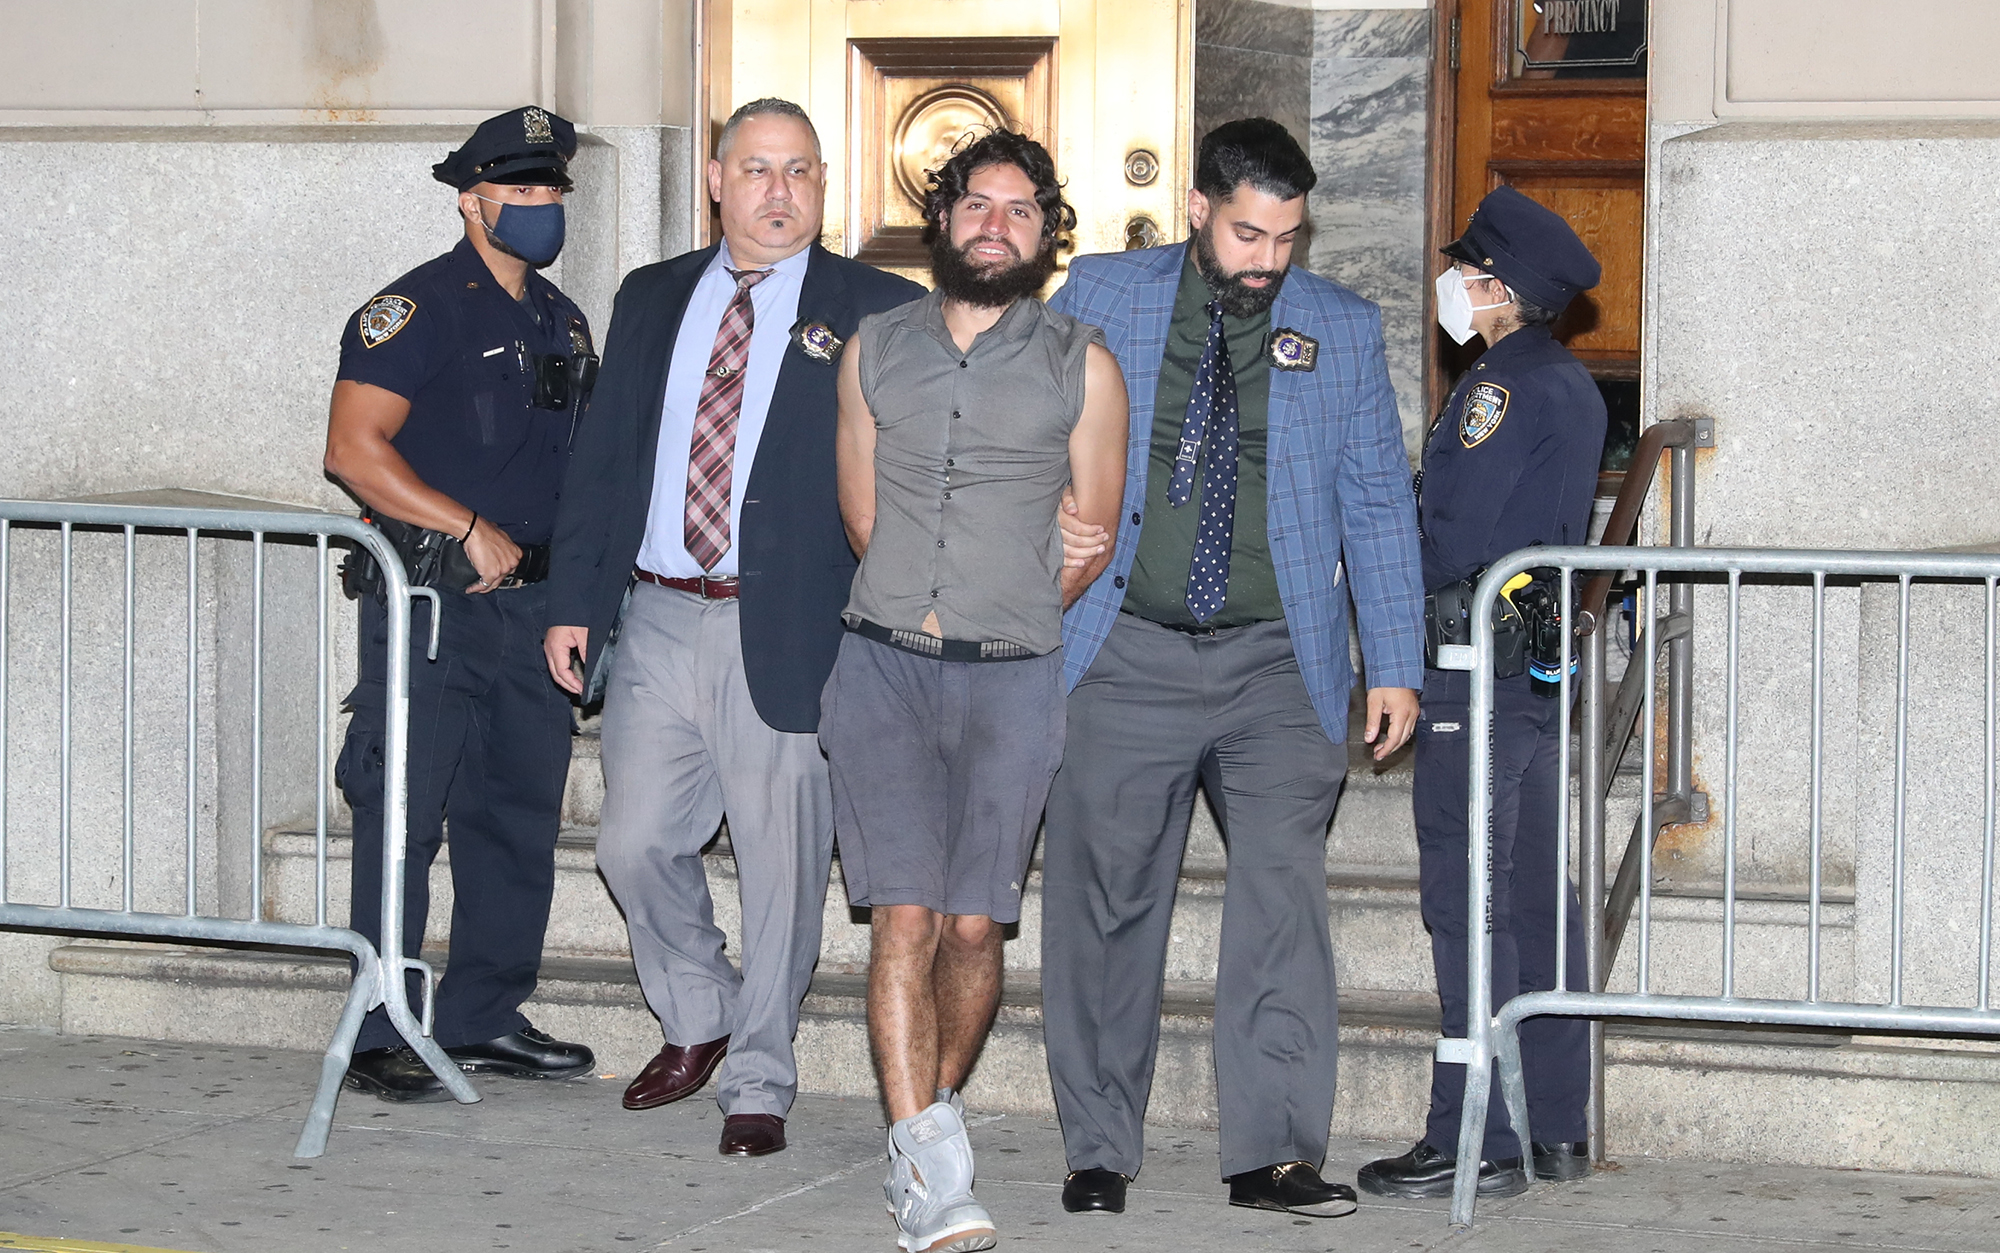 Santiago Salgado is walked from the 45th Precinct in the Bronx. He attempted to kidnap a young girl.